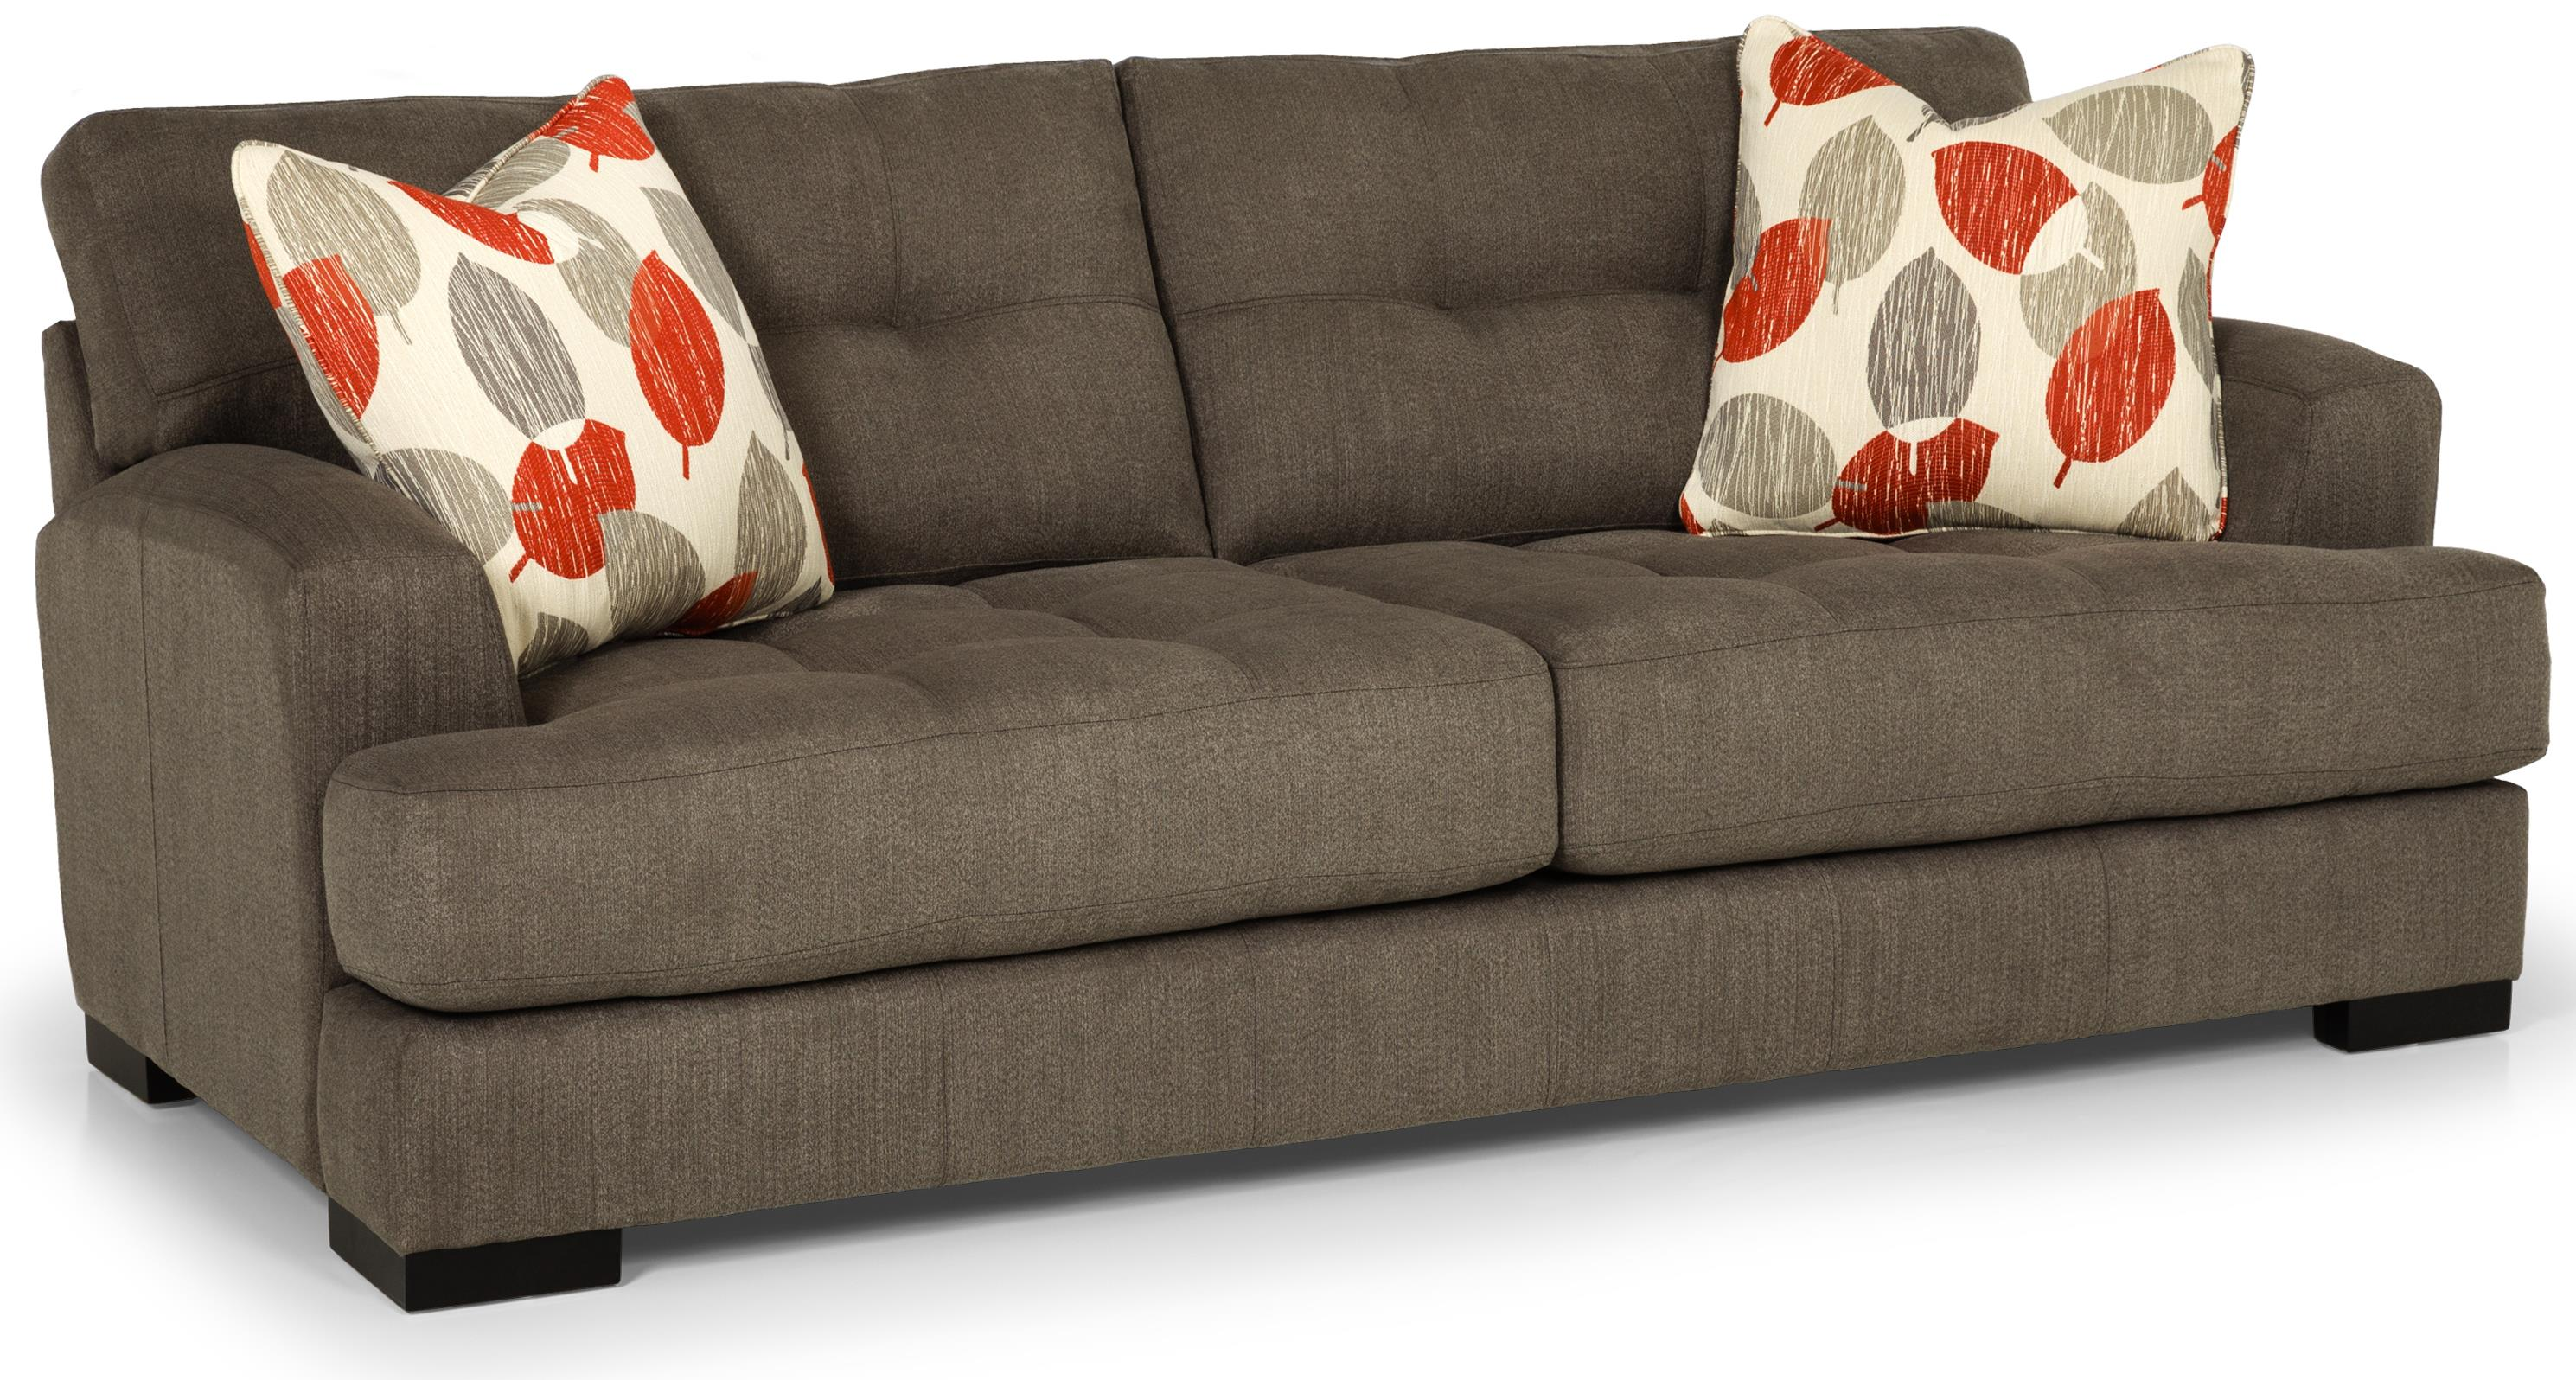 308 Stationary Sofa by Stanton at Wilson's Furniture